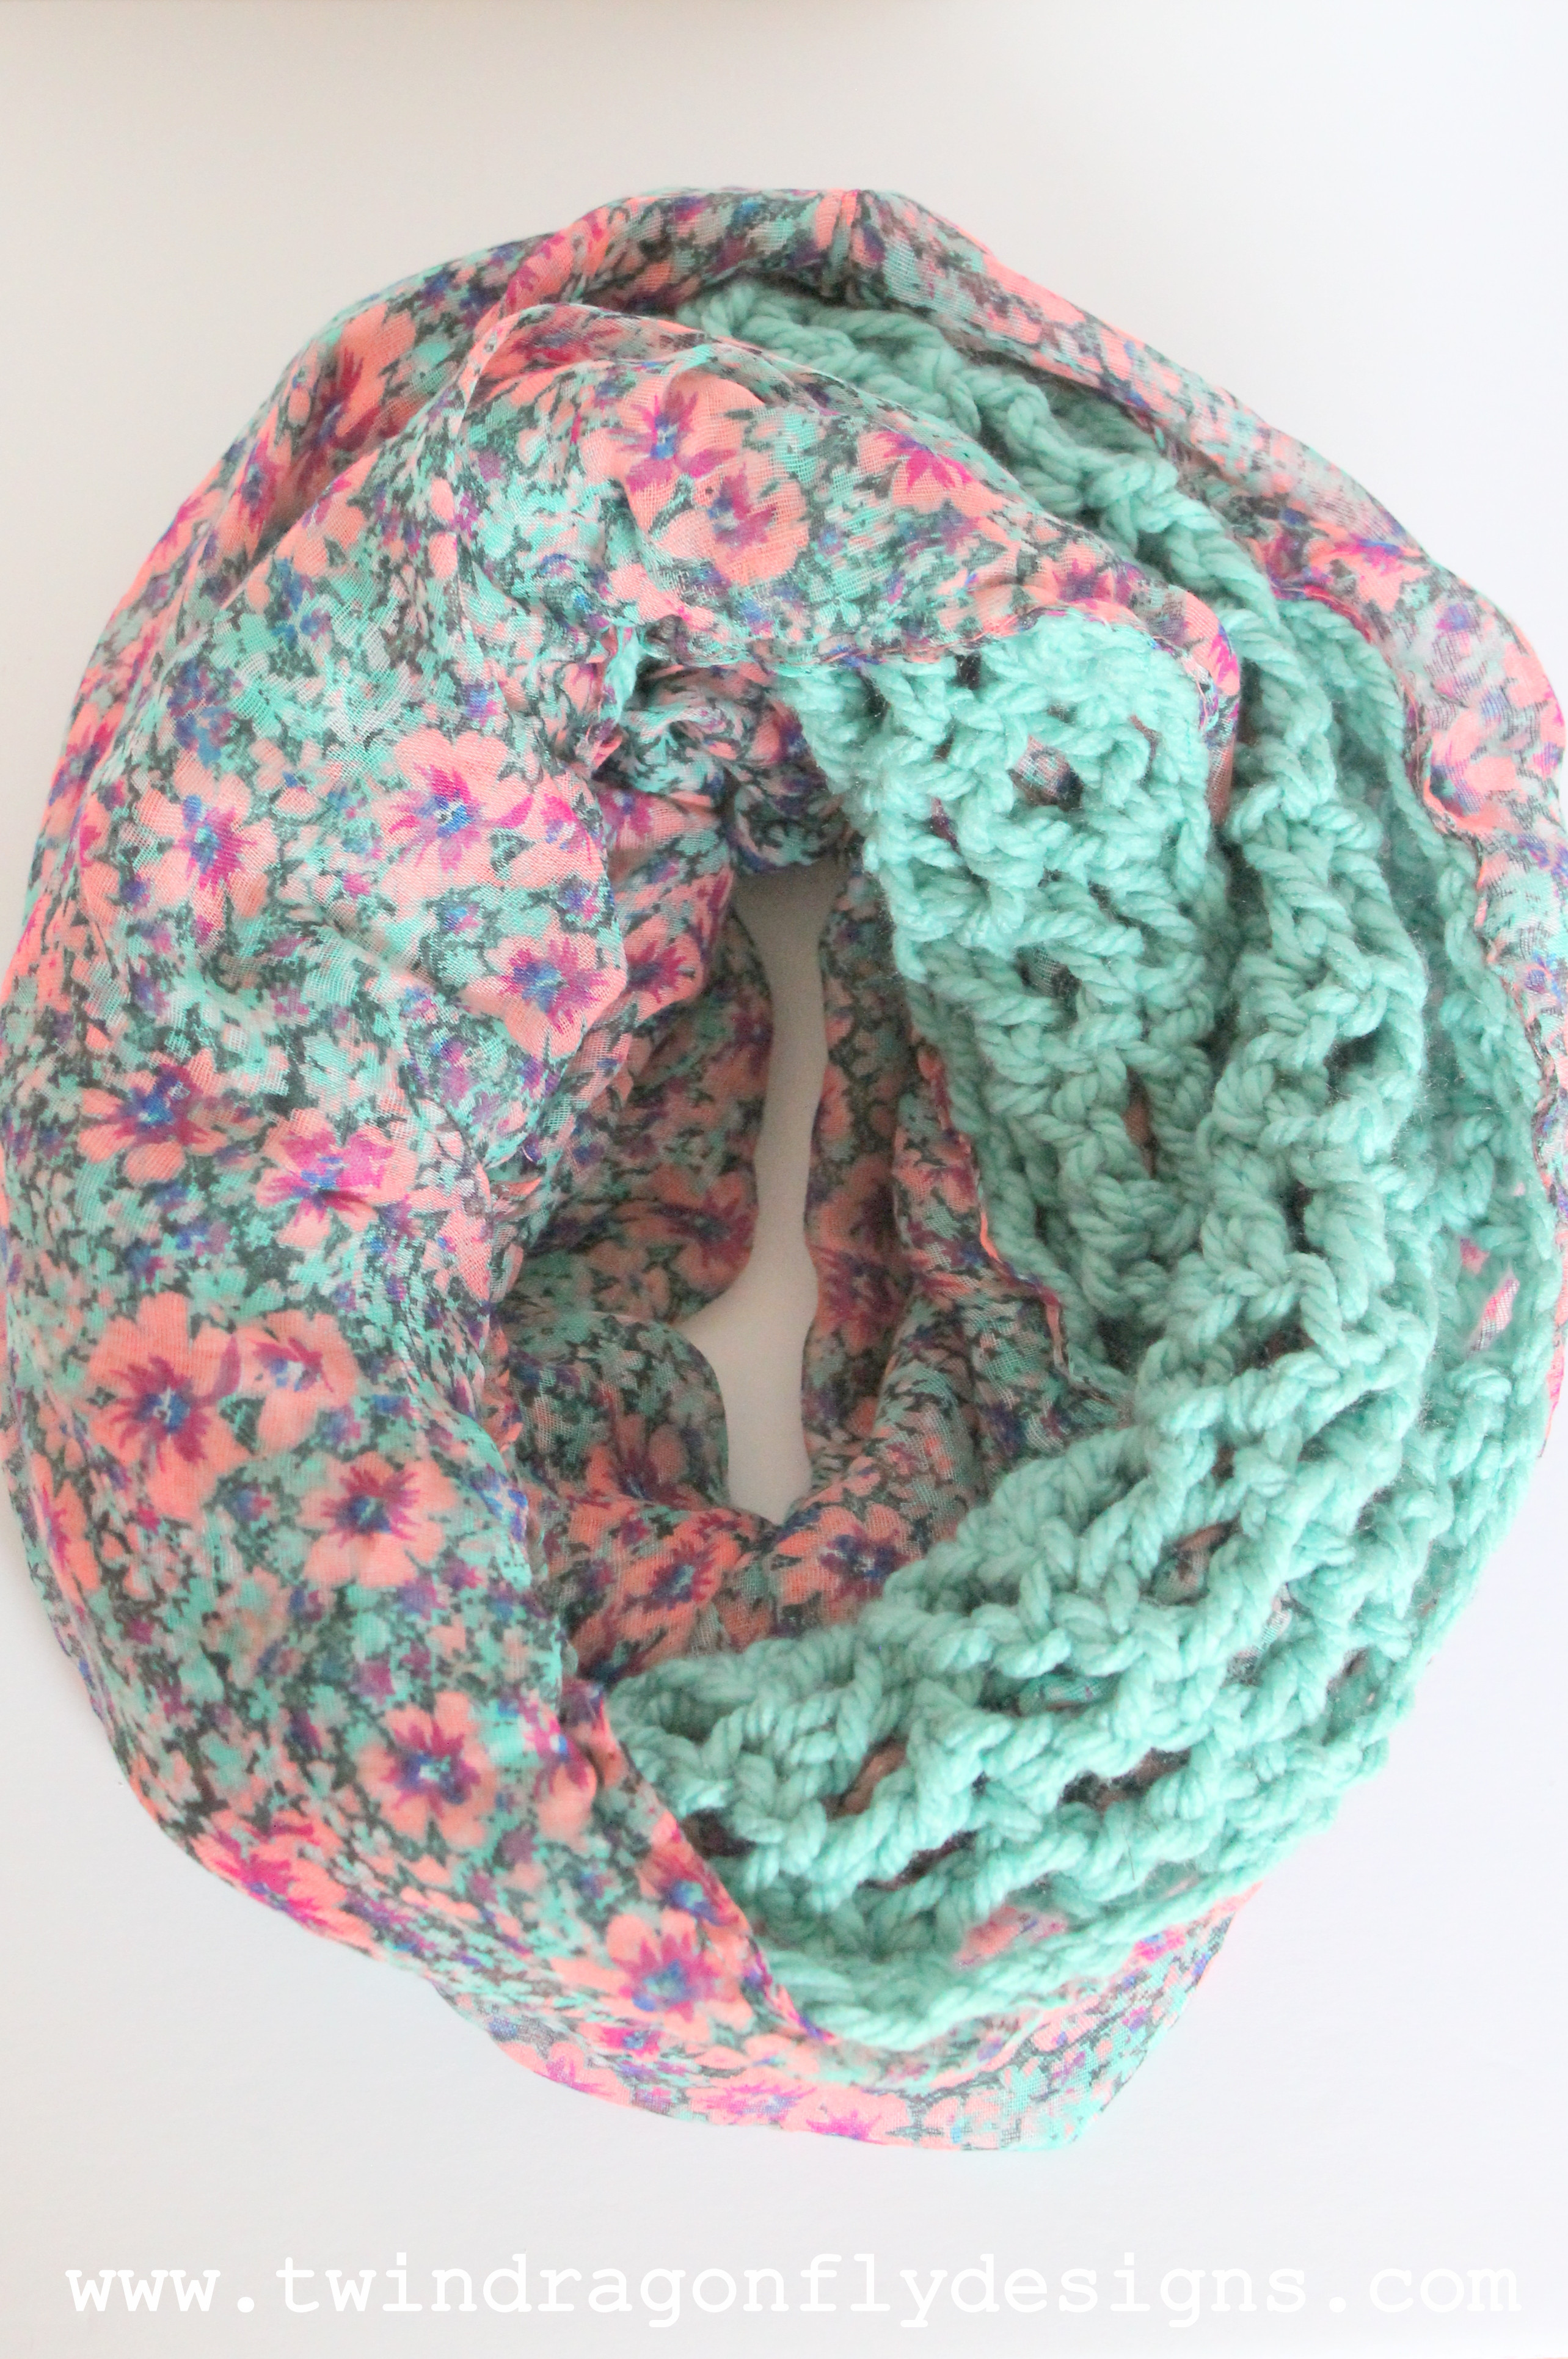 Infinity Scarf Crochet Awesome Crochet Chiffon Infinity Scarves Dragonfly Designs Of Innovative 44 Images Infinity Scarf Crochet